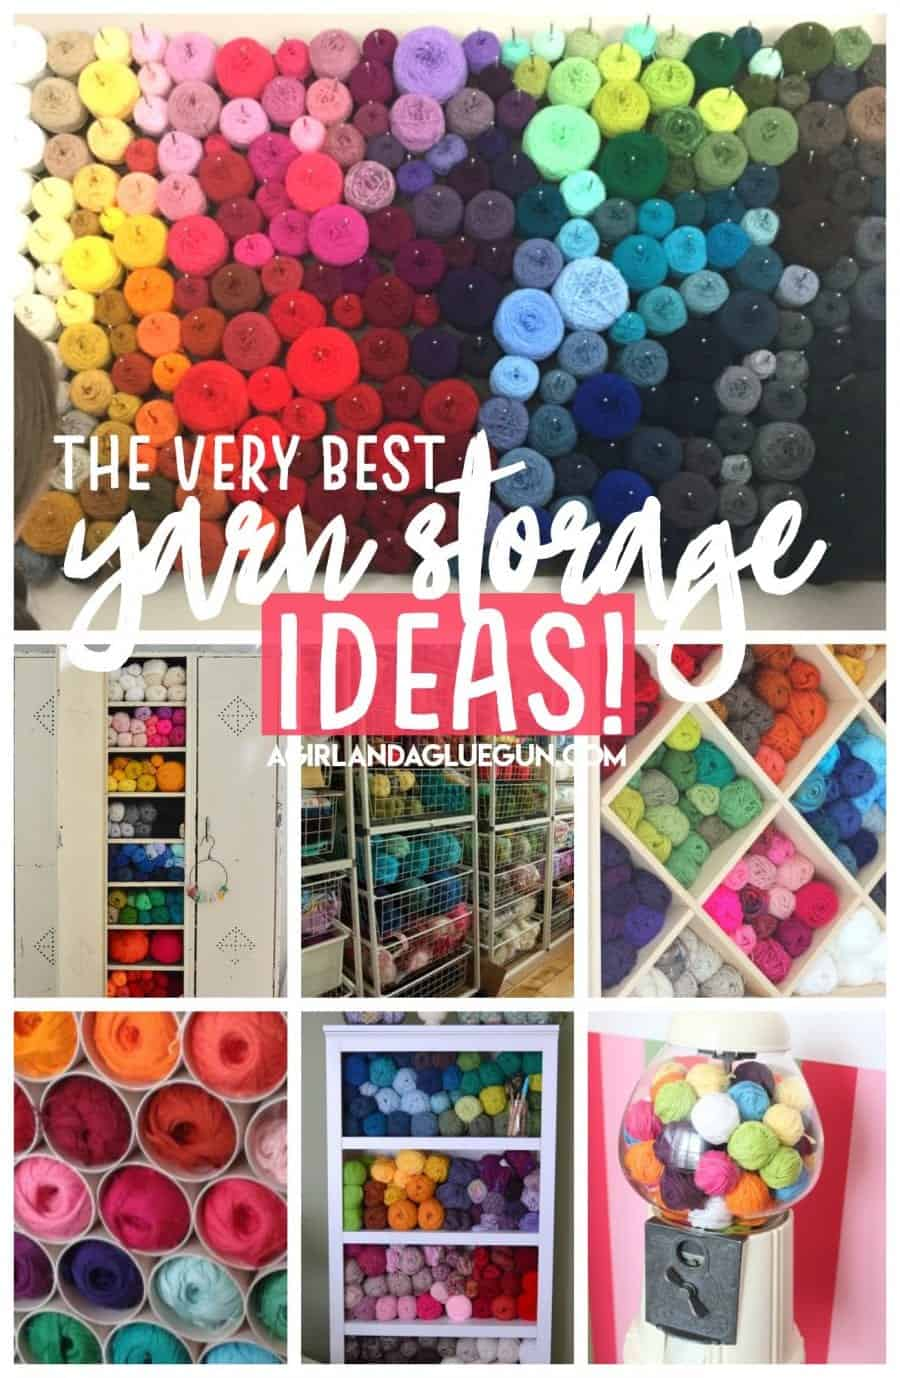 ... pom poms though) but that doesnu0027t mean I canu0027t appreciate some AMAZING yarn storage! Something about all those pretty colors just make me swoon!! Enjoy!  sc 1 st  A girl and a glue gun & yarn storage - A girl and a glue gun